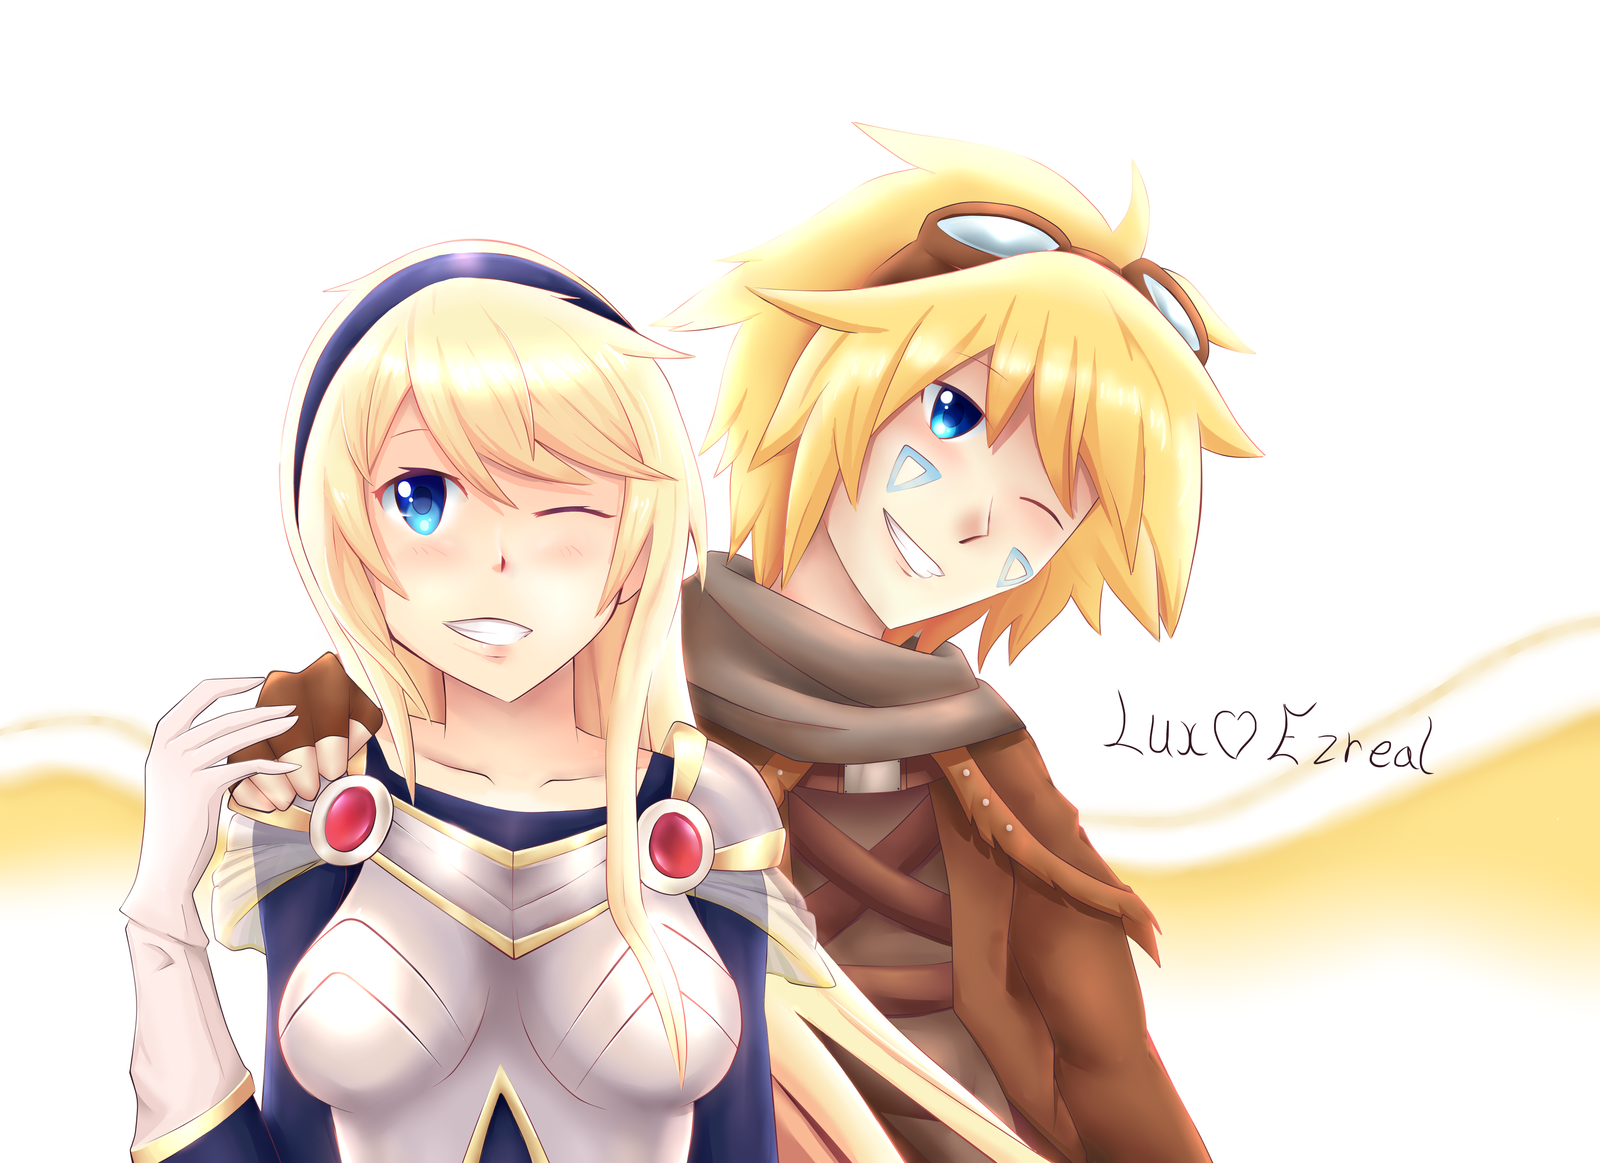 ezreal and lux relationship help